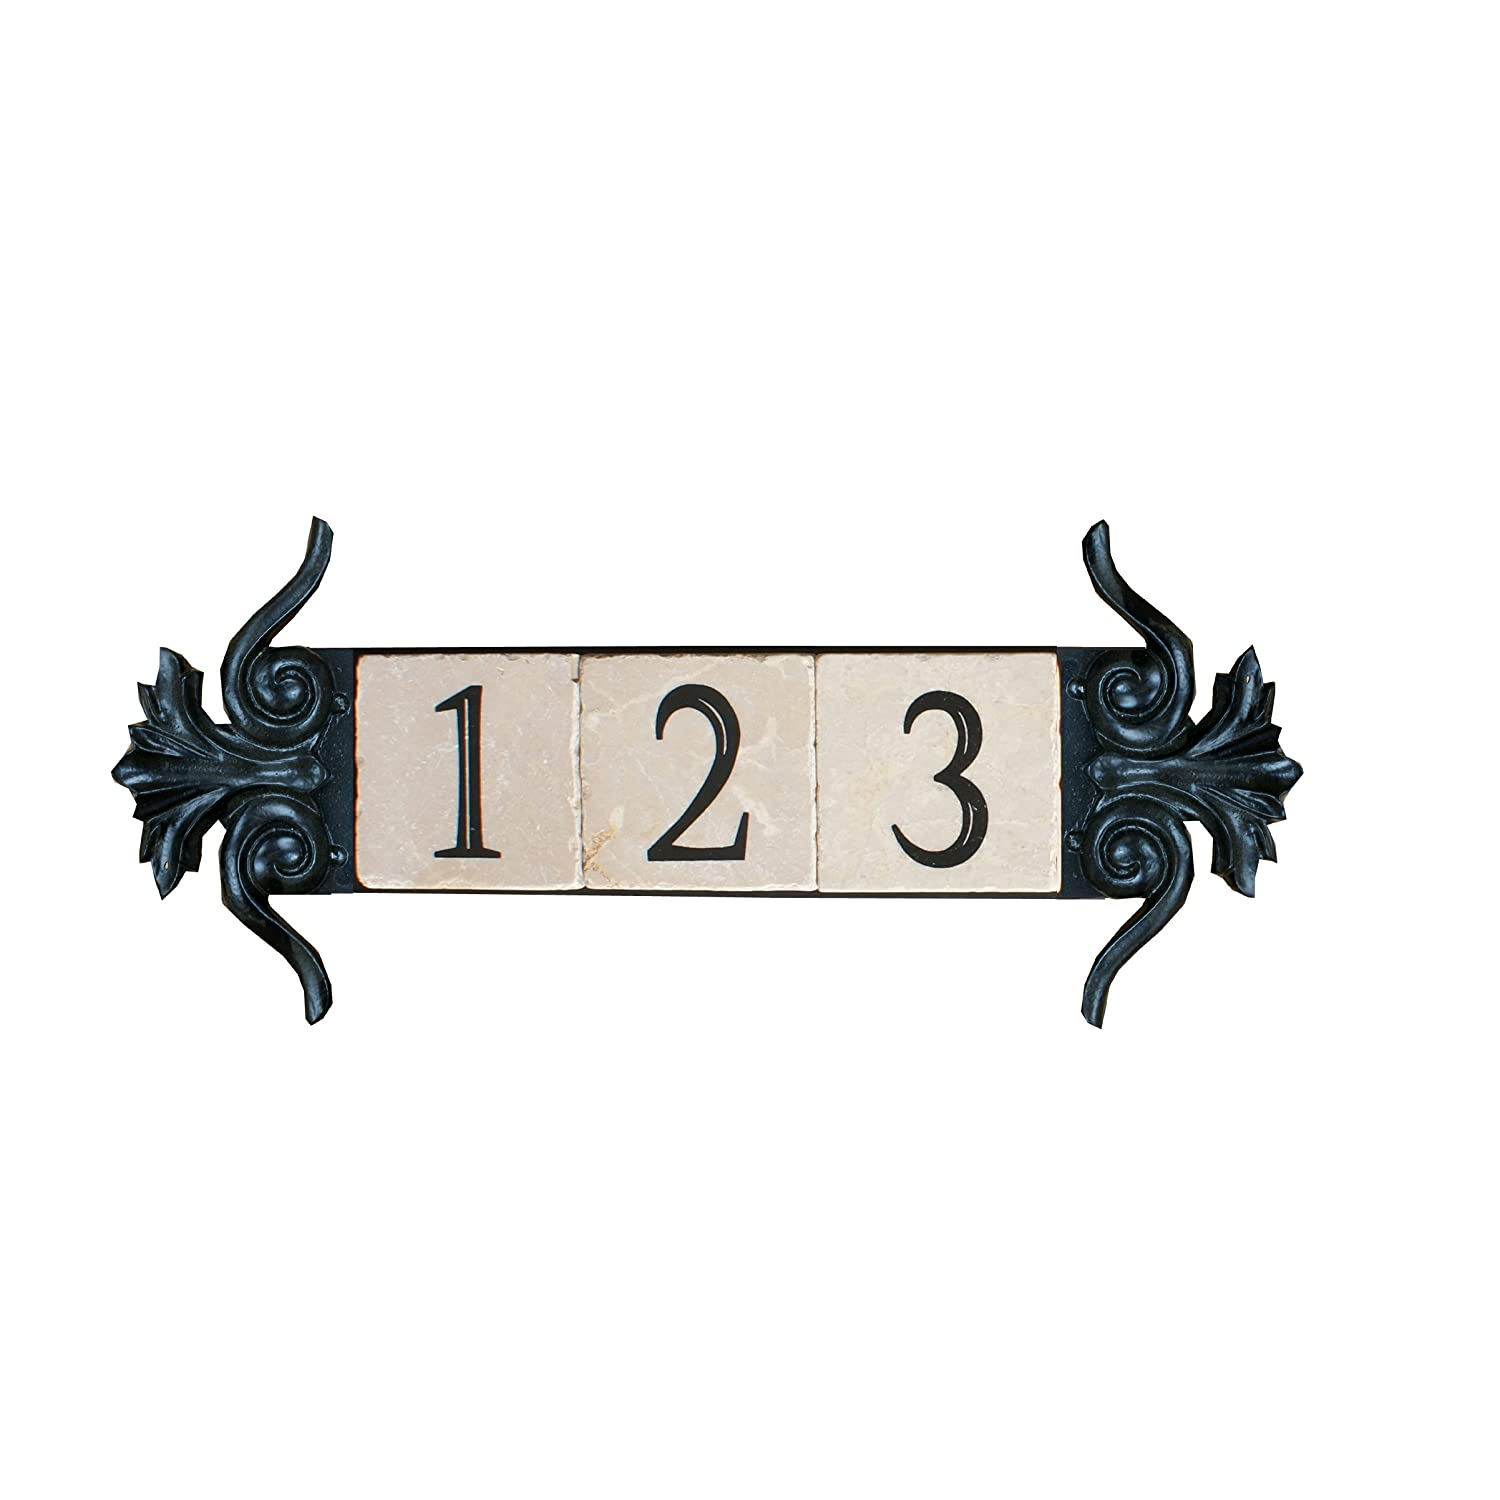 NACH KA House Address Sign/Plaque - Grapes, 4 Numbers, Iron, 16 x 8 x 1' 16 x 8 x 1 North American Country Home ka-grapes-4